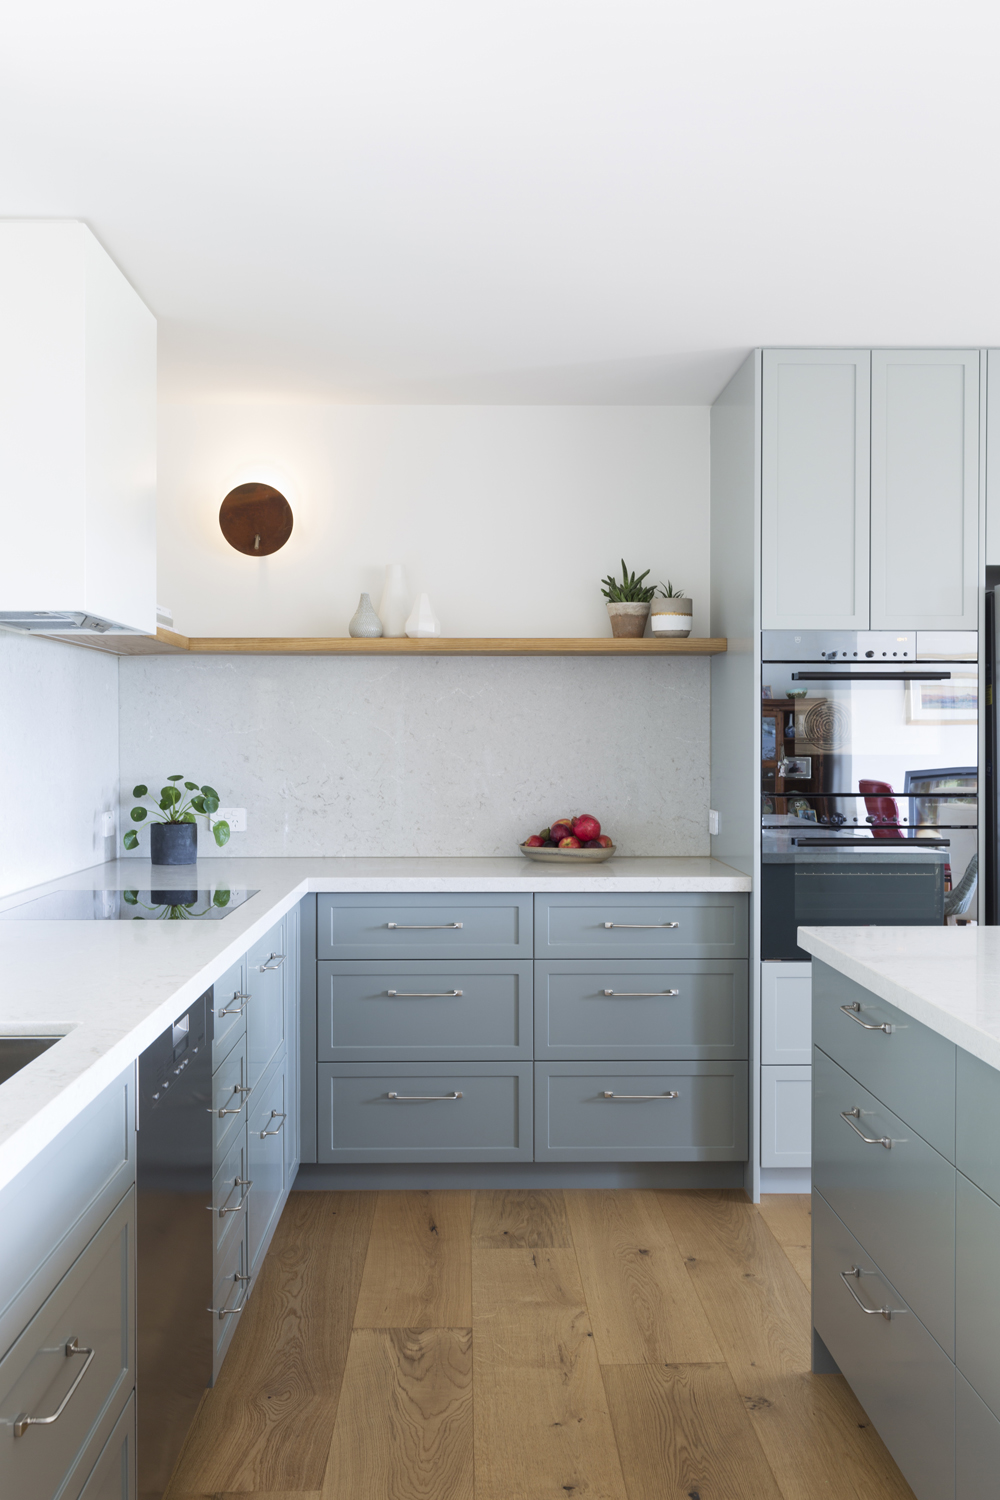 Red Hill contemporary country kitchen design by interior designer Meredith Lee.